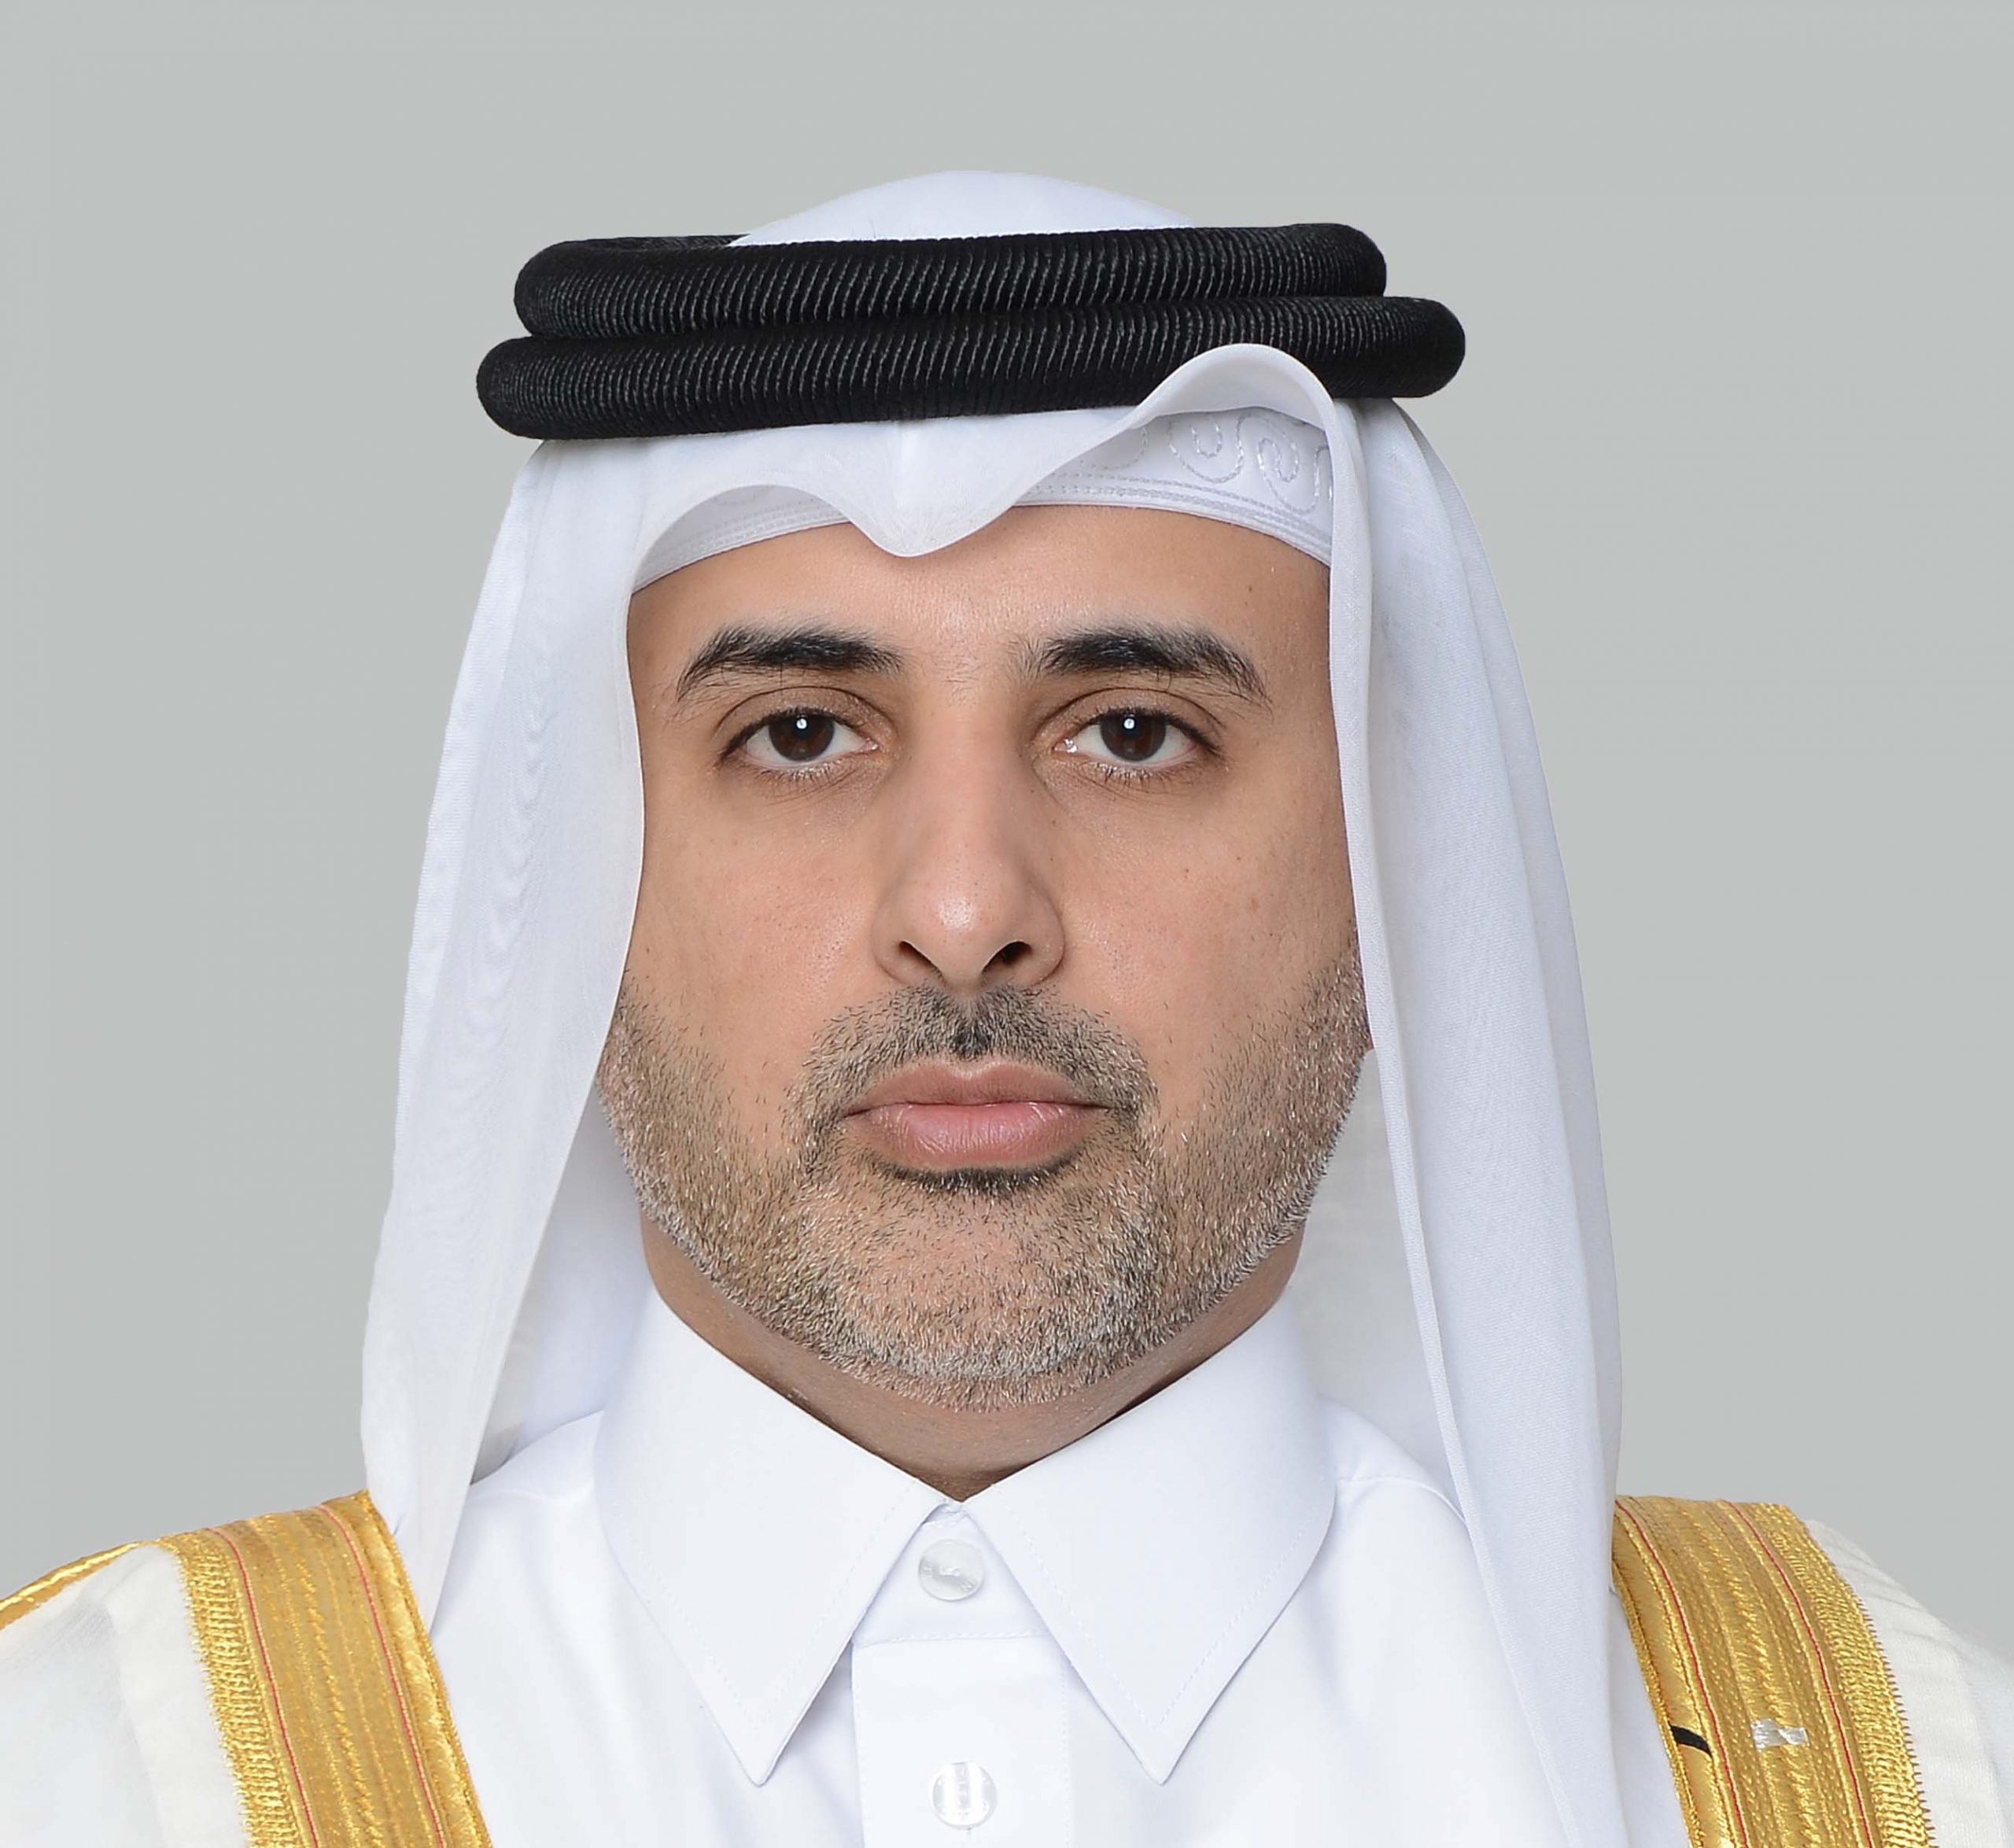 'Food Security is a National Security Issue for the State of Qatar'